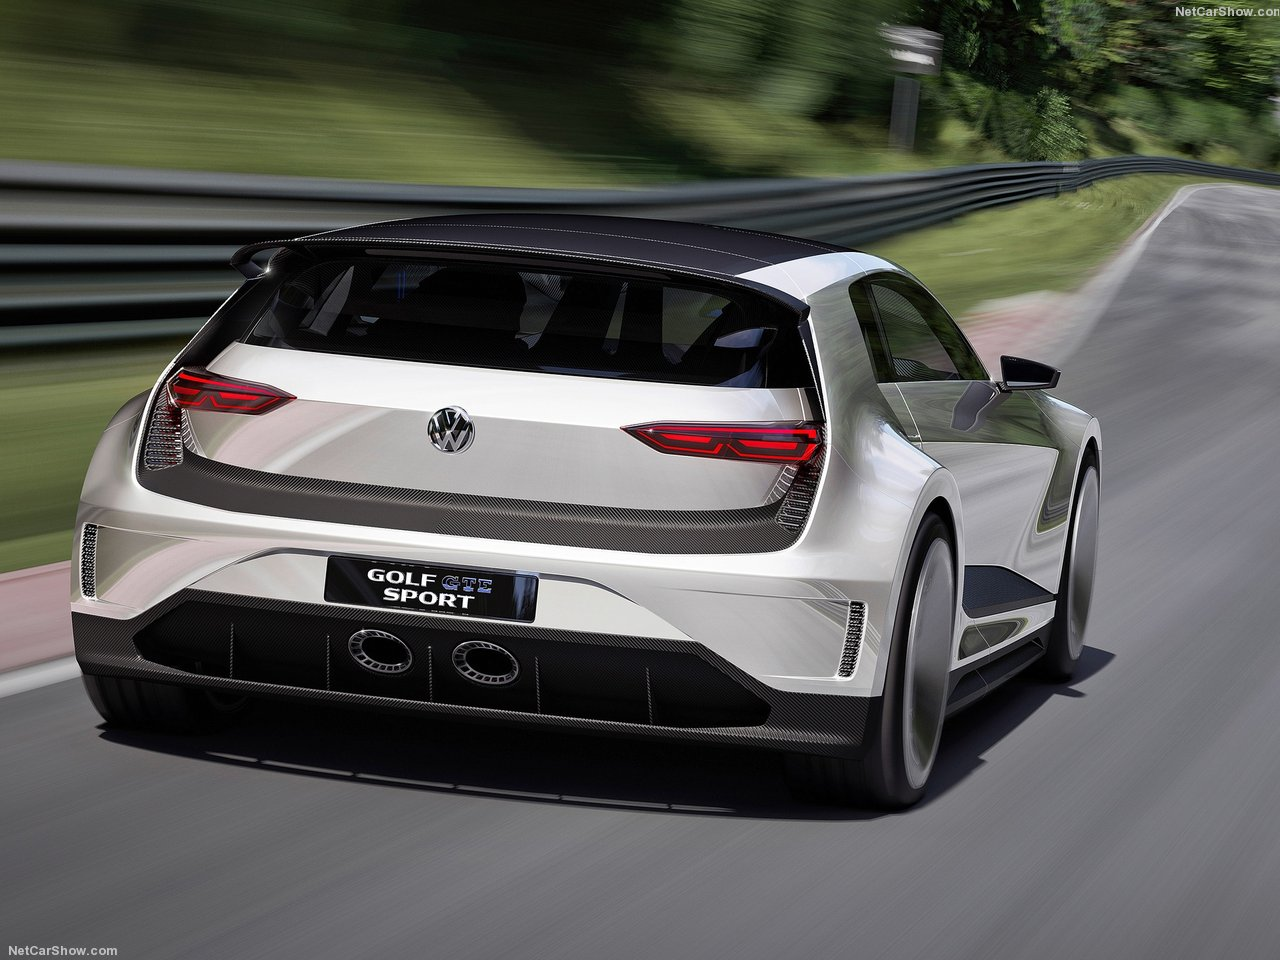 Volkswagen Golf GTE Sport Concept photo 142346